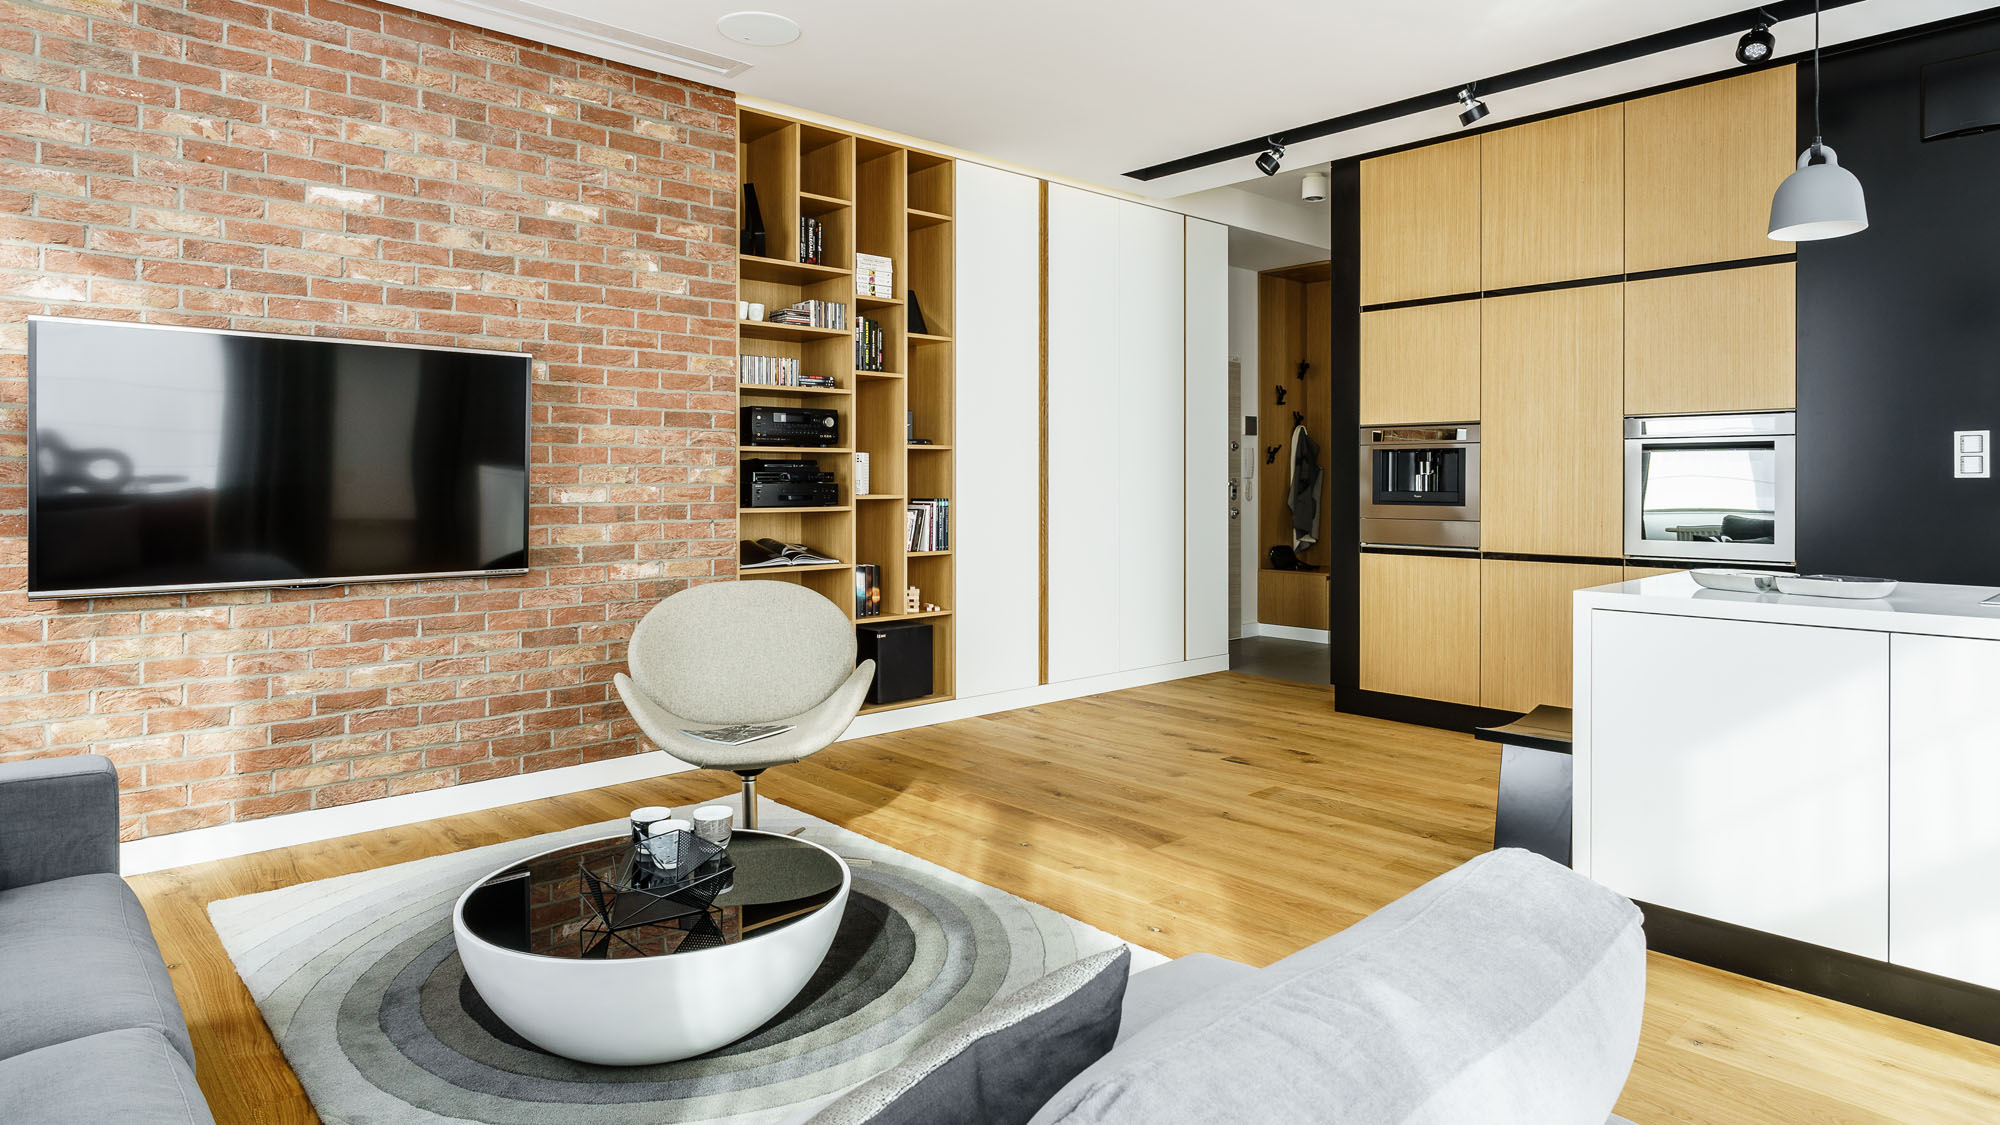 Modern Metallic, Wooden, White Theme Three Bedroom Apartment in Gdynia by Dragon Art-13